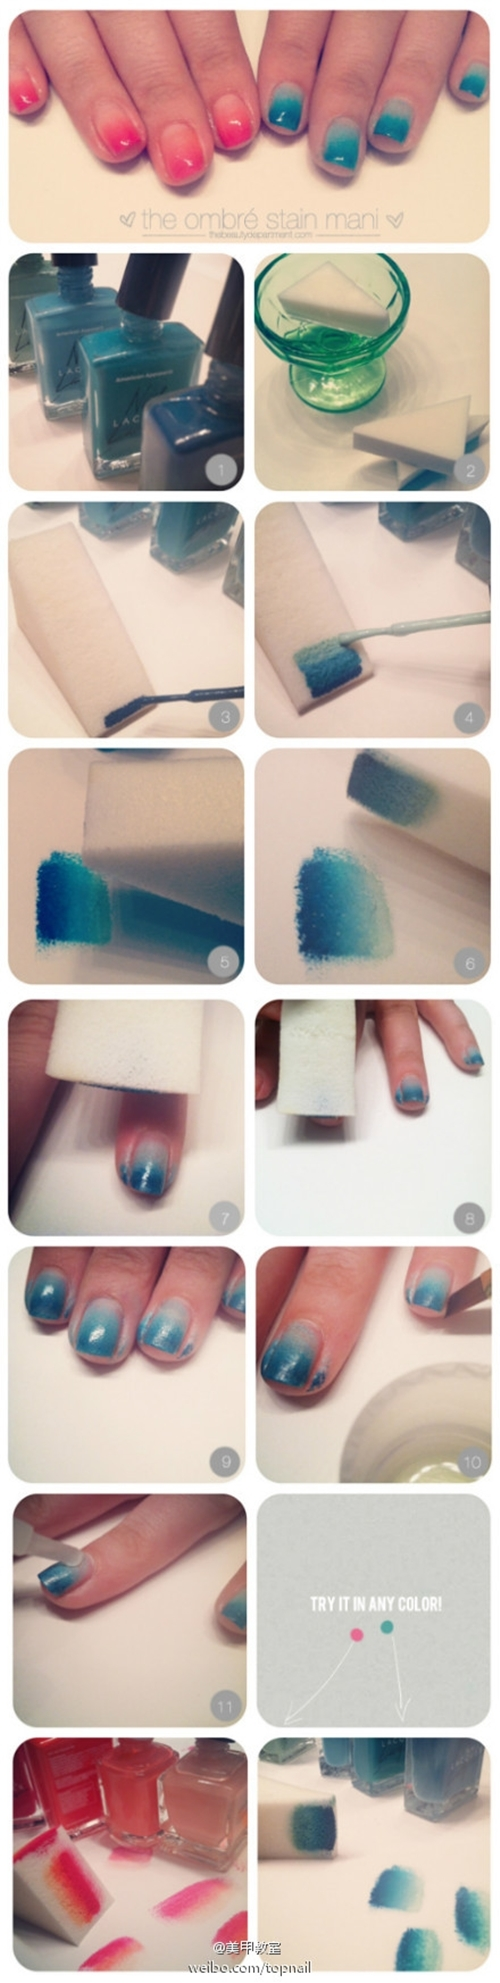 ombre nails! pretty cute!!  looks simple!